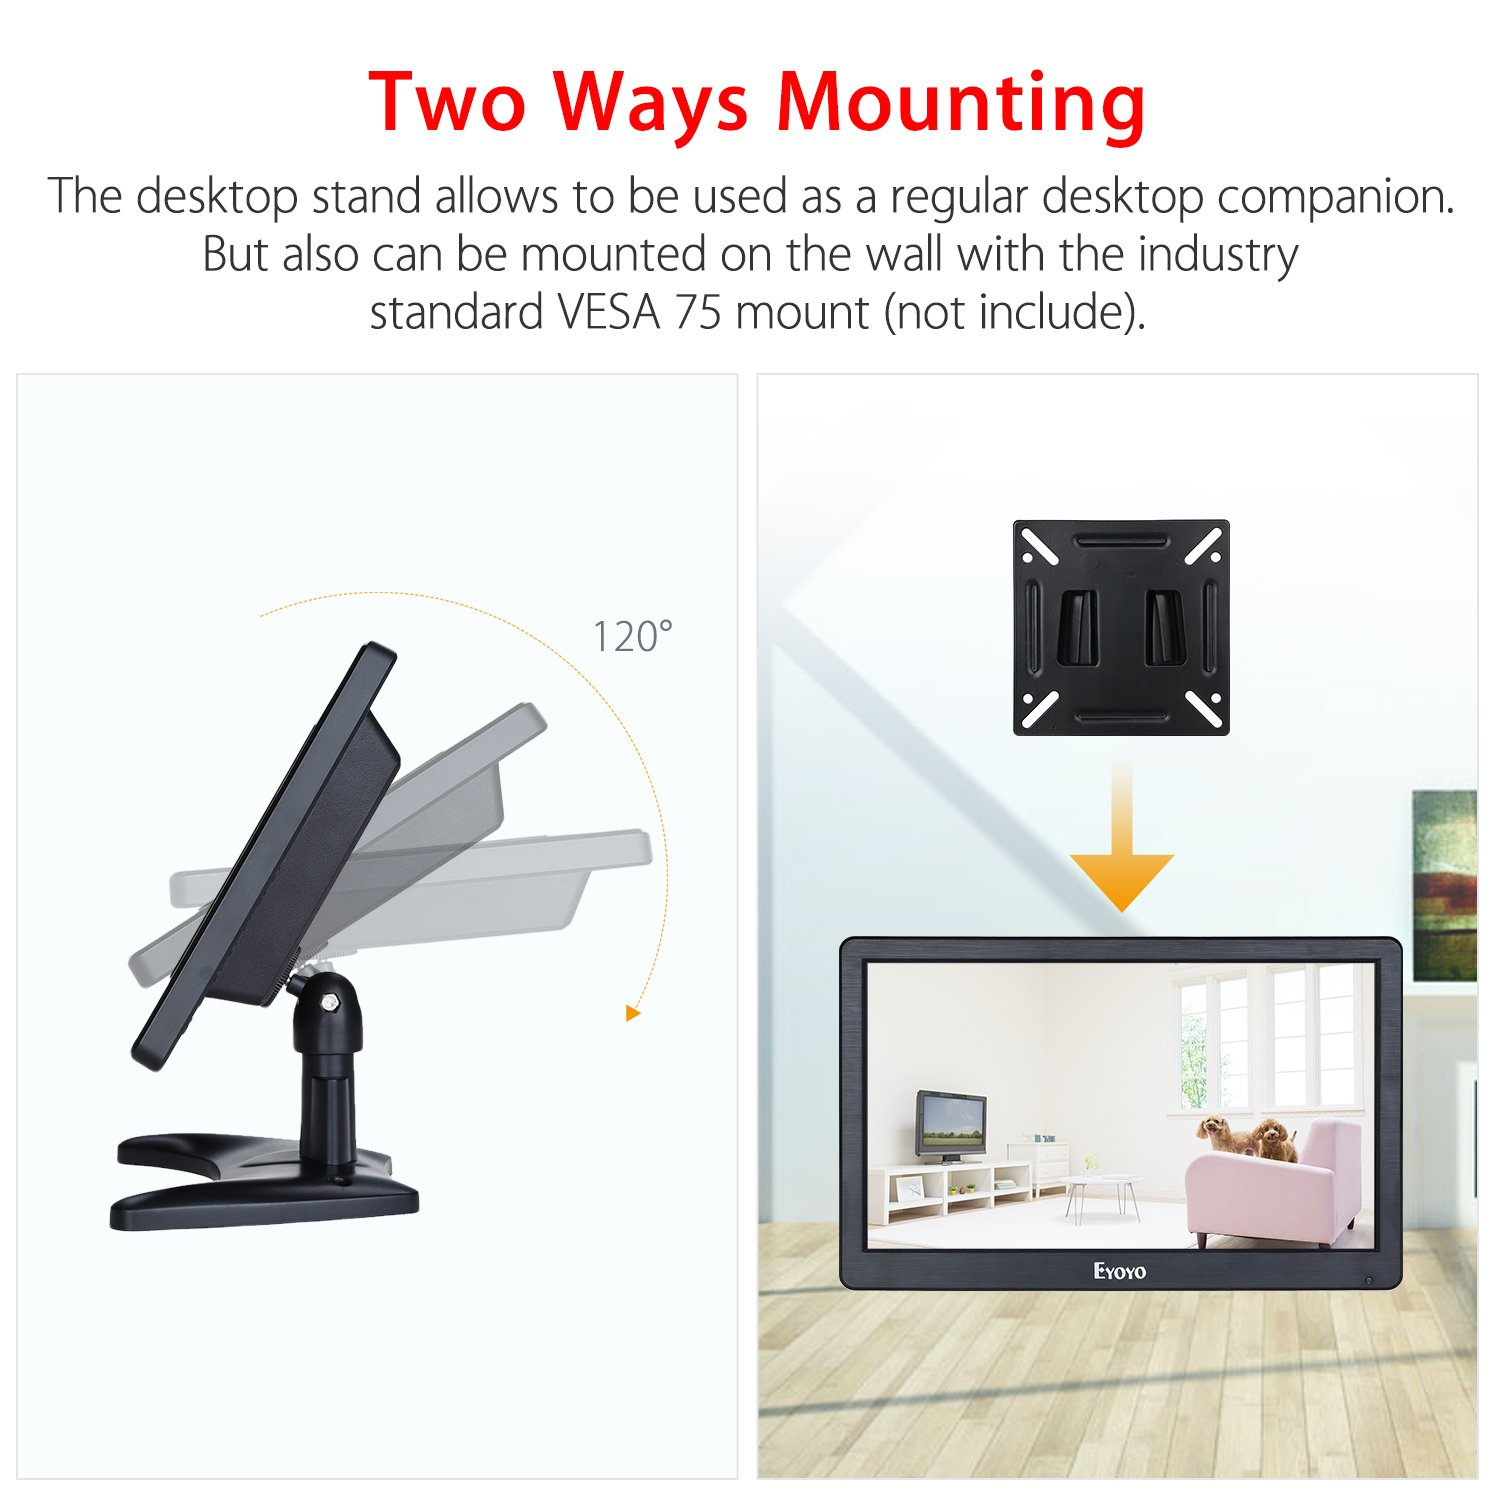 Eyoyo 12 inch HD 1920x1080 IPS LCD HDMI Monitor Screen Input Audio Video Display with BNC Cable for PC Computer Camera DVD Security CCTV DVR Home Office Surveillance by Eyoyo (Image #3)